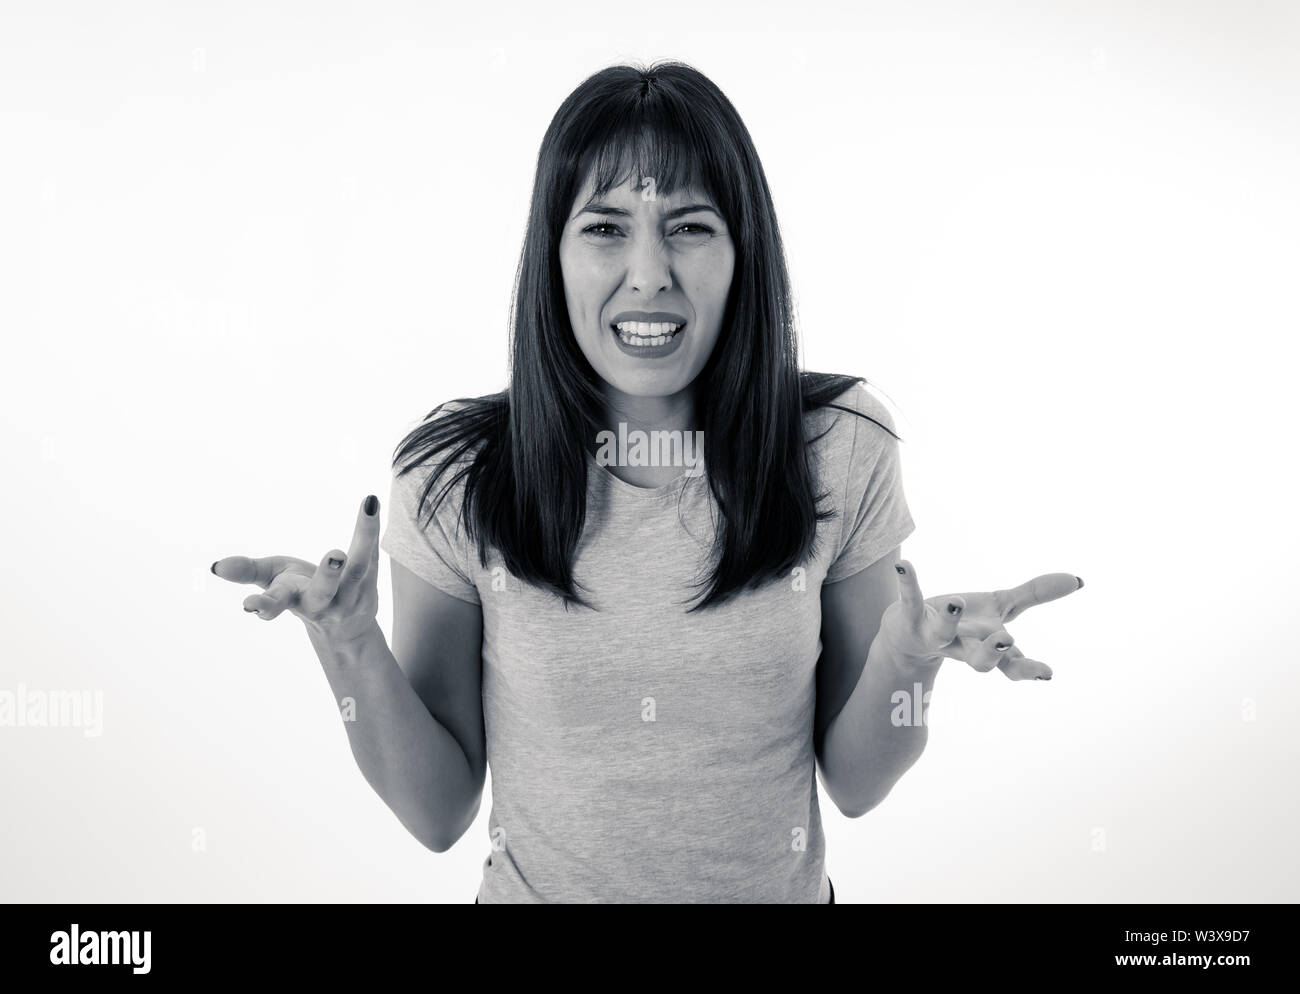 Close up portrait of young attractive caucasian woman with an angry face. Looking mad and crazy shouting and making furious gestures. Isolated on blac - Stock Image